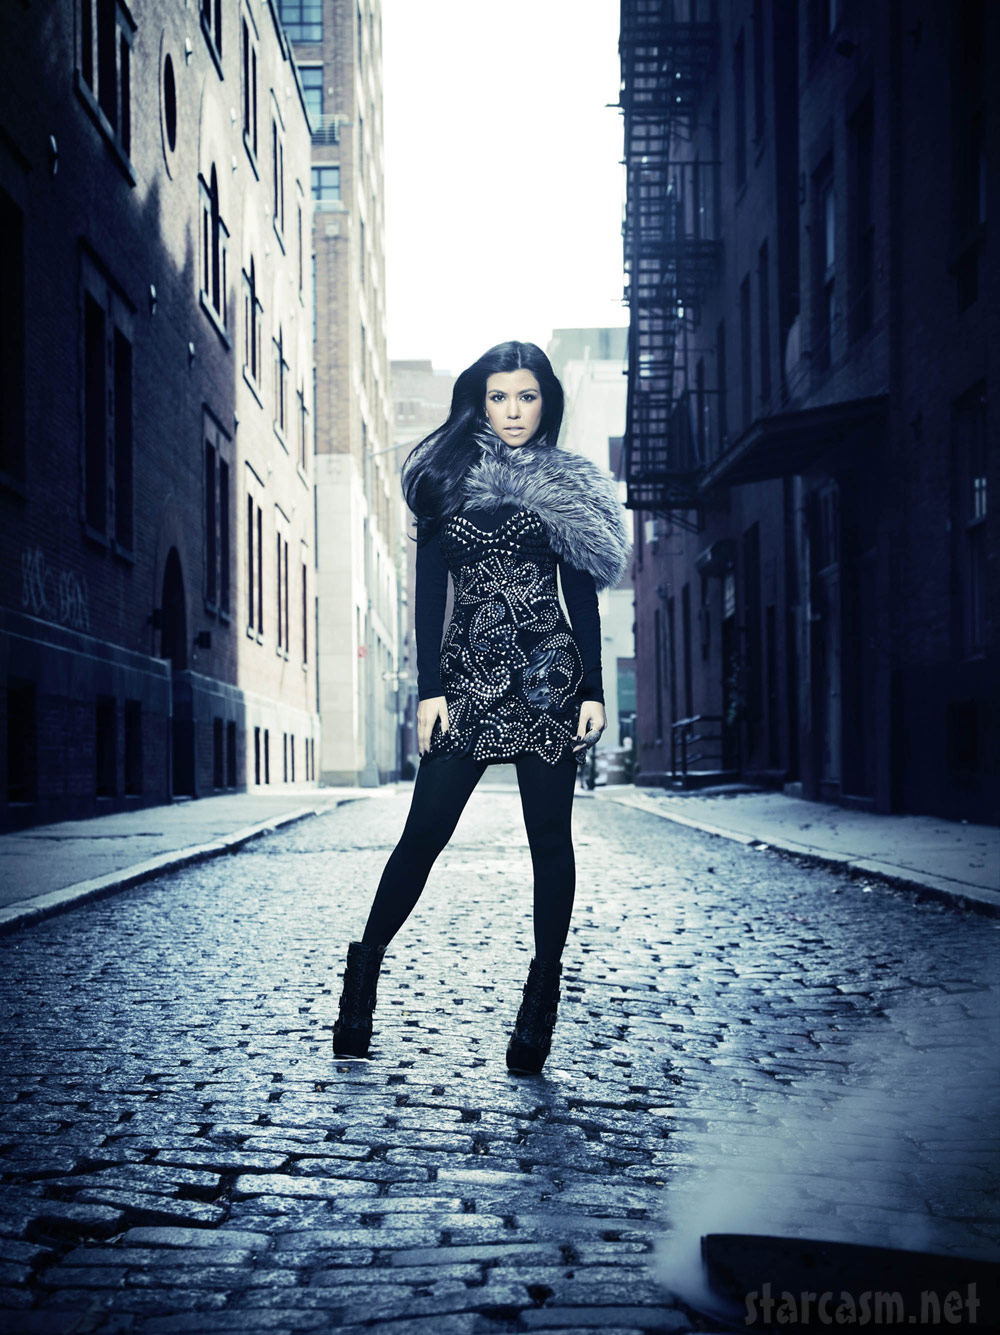 Kourtney Kardashian poses on a NYC street for Kourtney and Kim Take New York